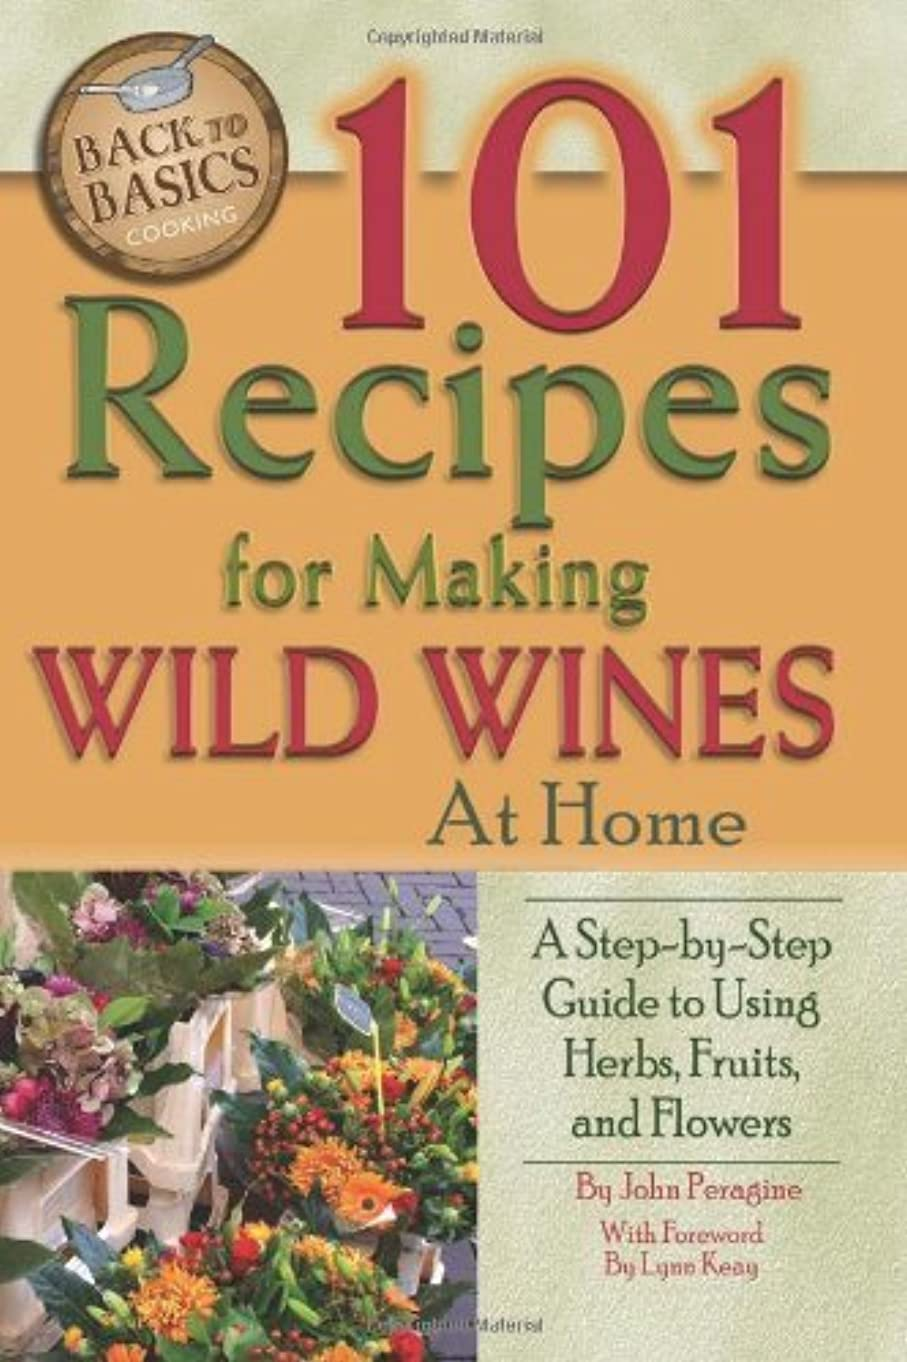 突破口ヘッドレス骨髄101 Recipes for Making Wild Wines at Home: A Step-by-Step Guide to Using Herbs, Fruits, and Flowers (Back to Basics Cooking) (English Edition)